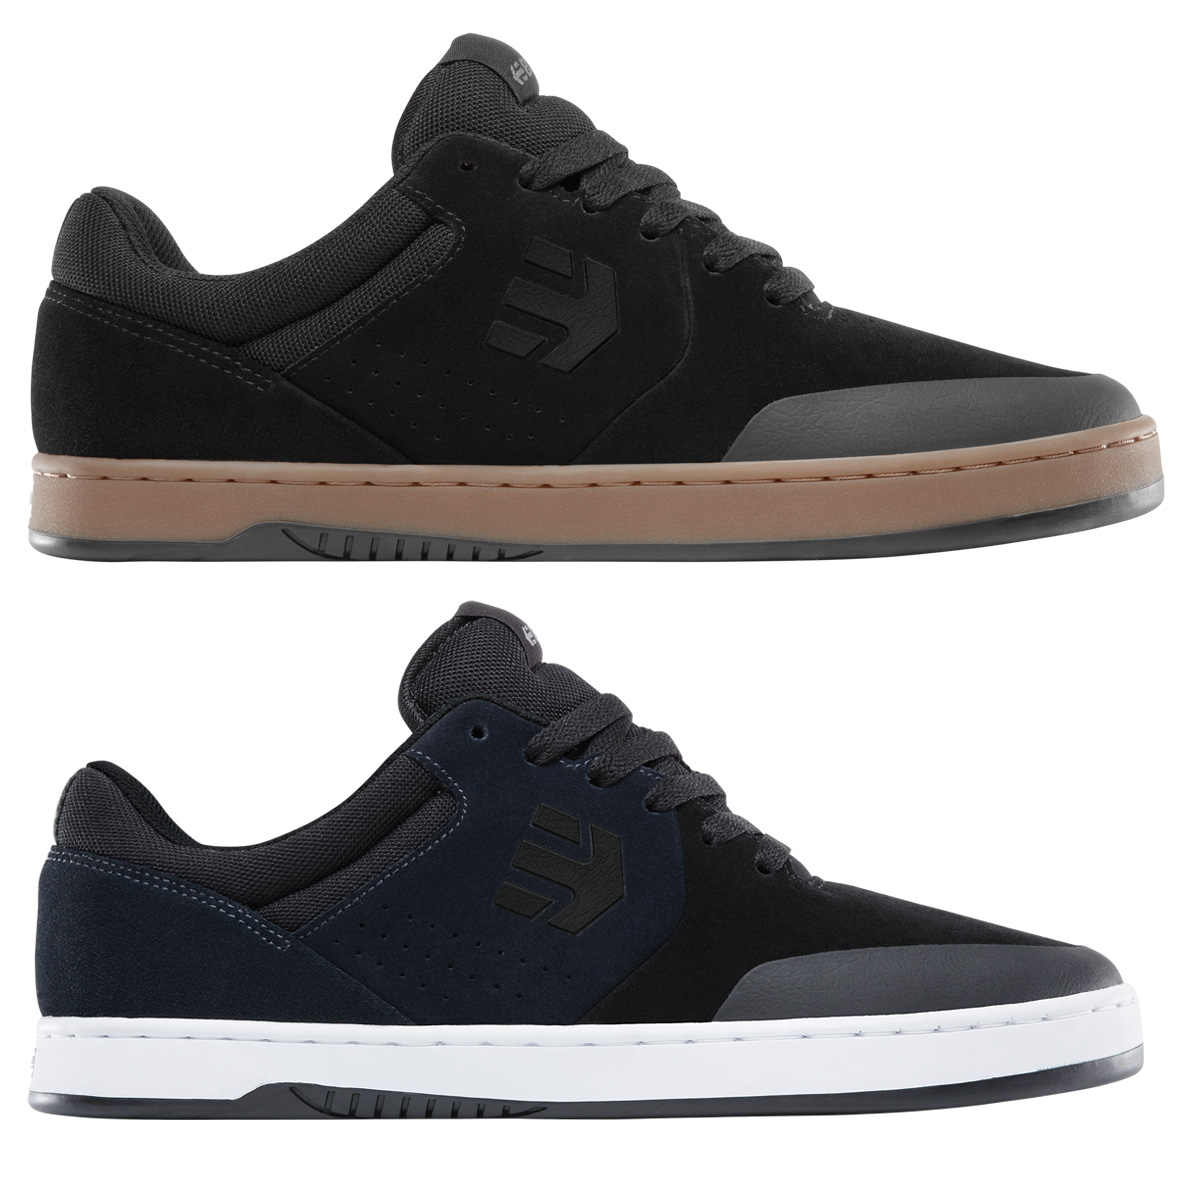 d232219b34 Sentinel Etnies Skate Shoes - Marana - Skateboarding Trainers Footwear  Black Navy Red Gum